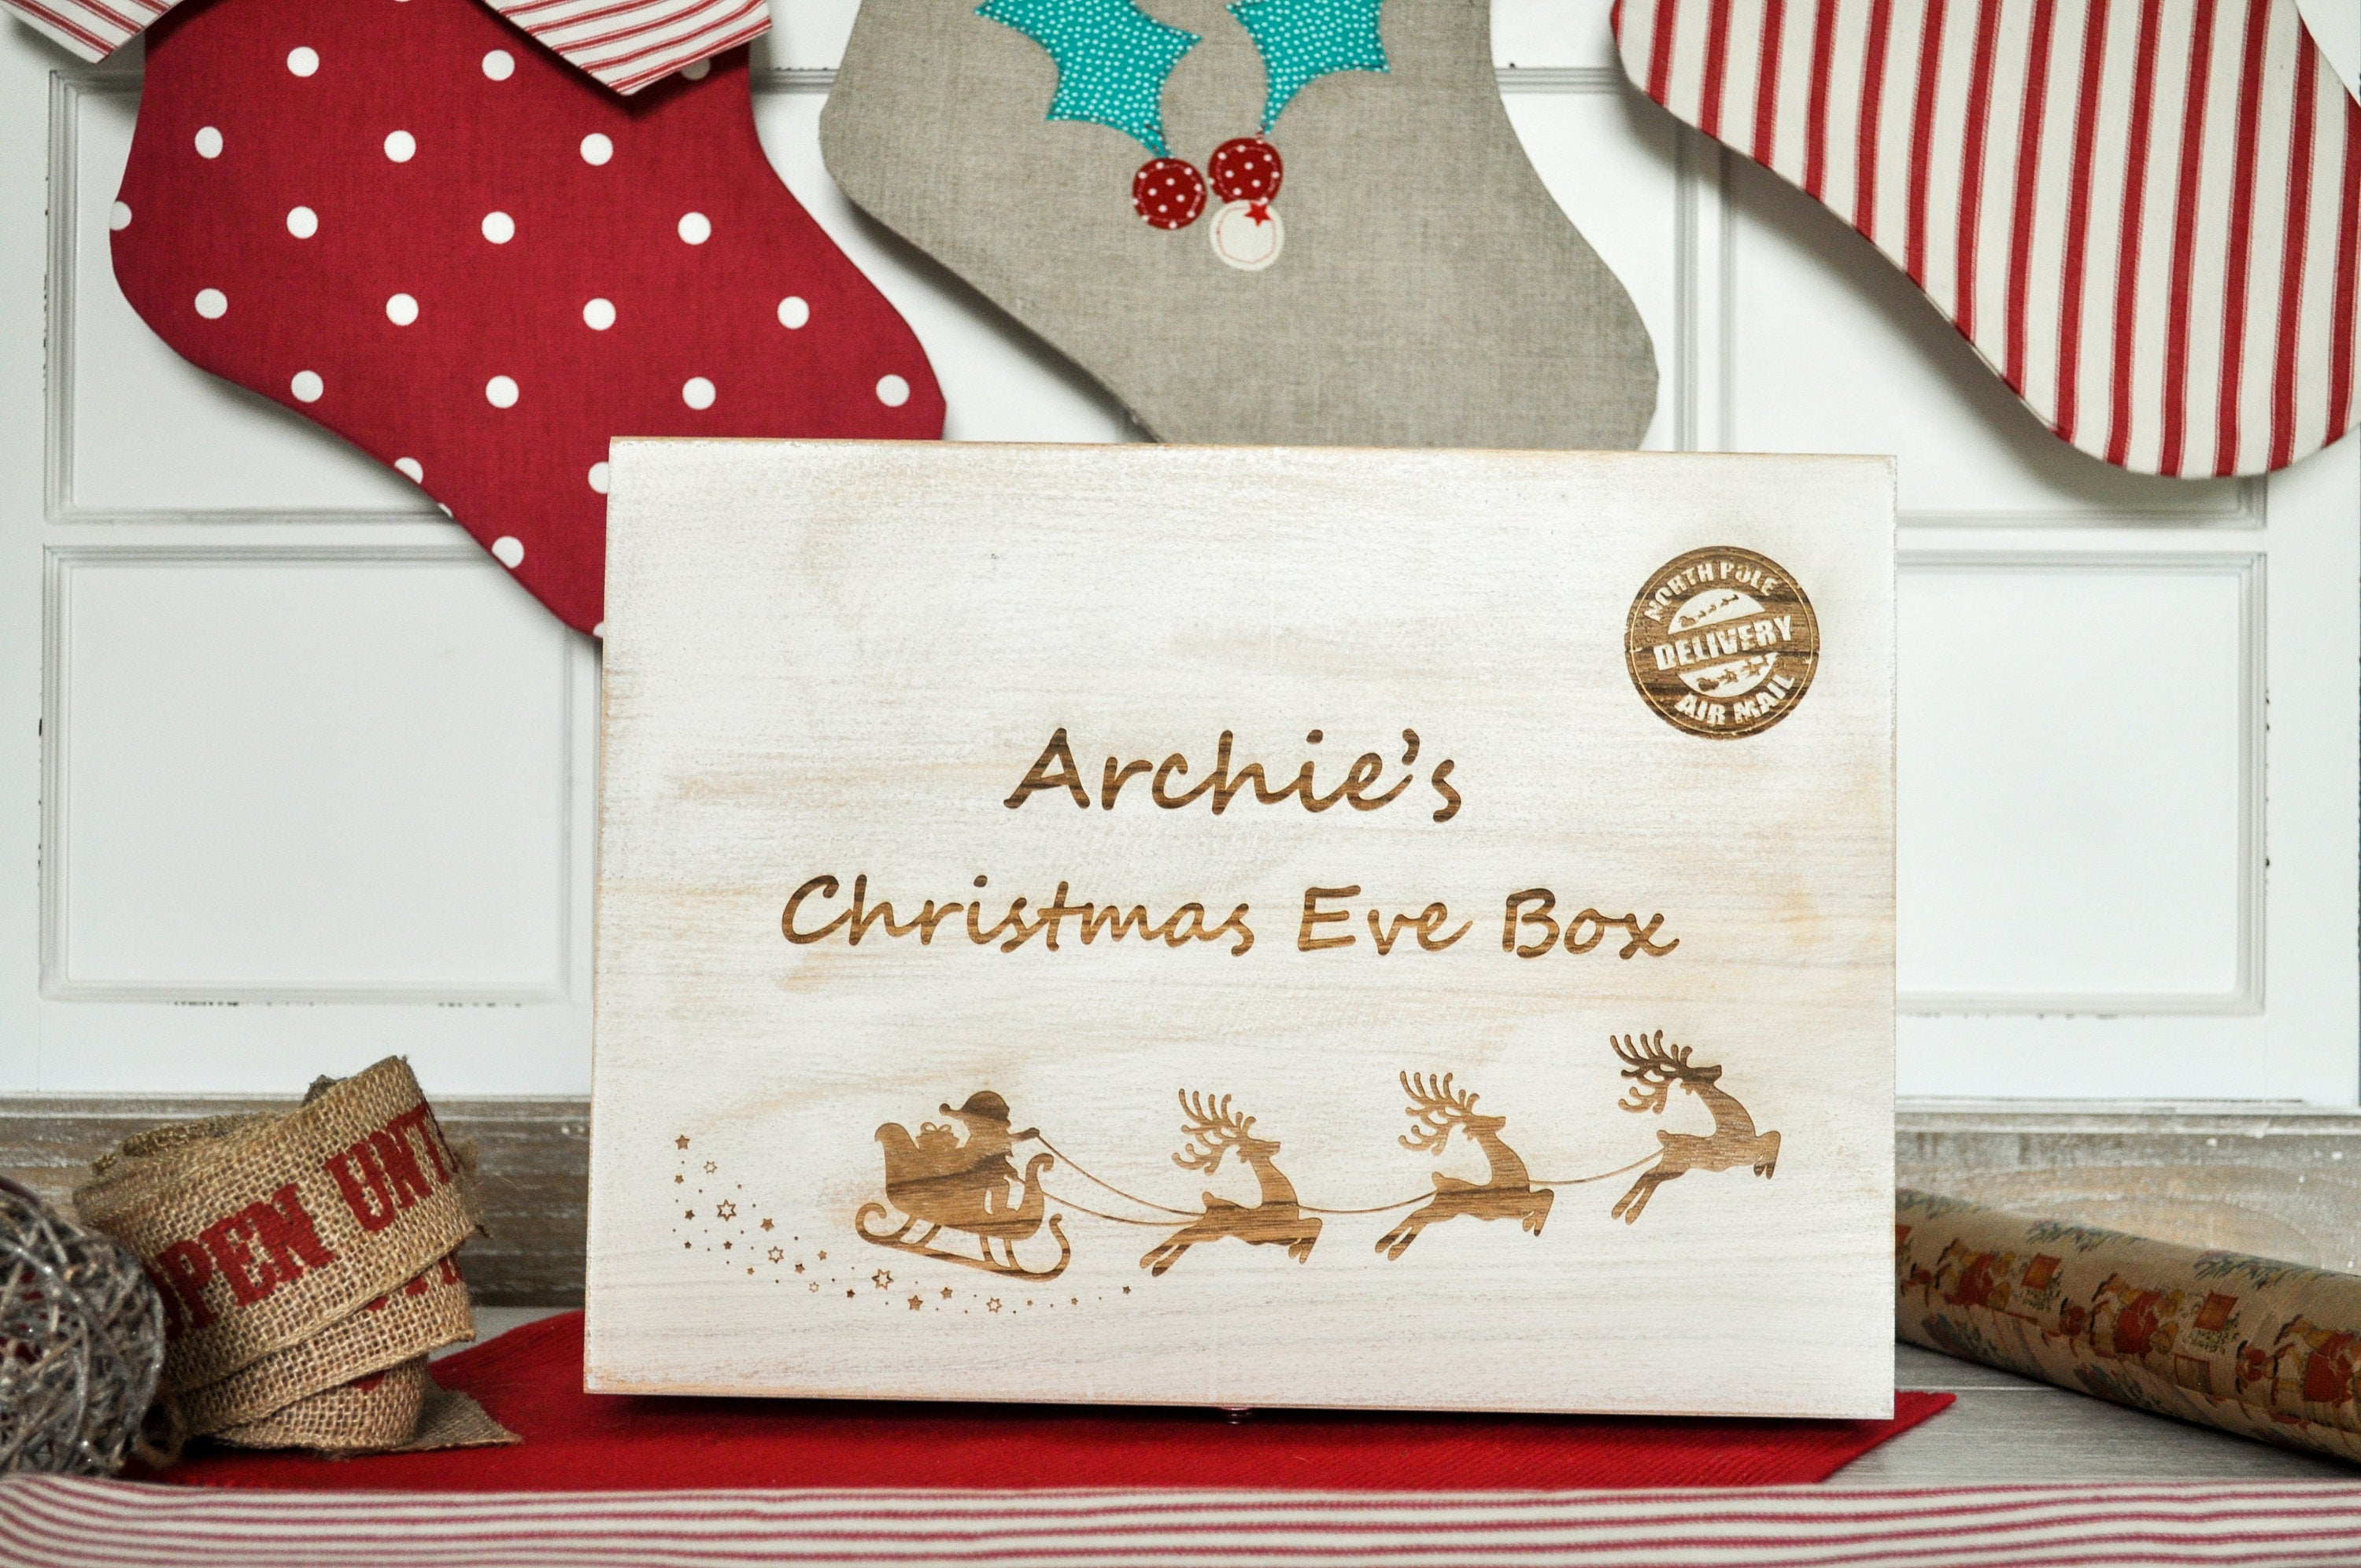 Engraved Christmas Eve Box - Personalised Santa Sleigh & Reindeer Design